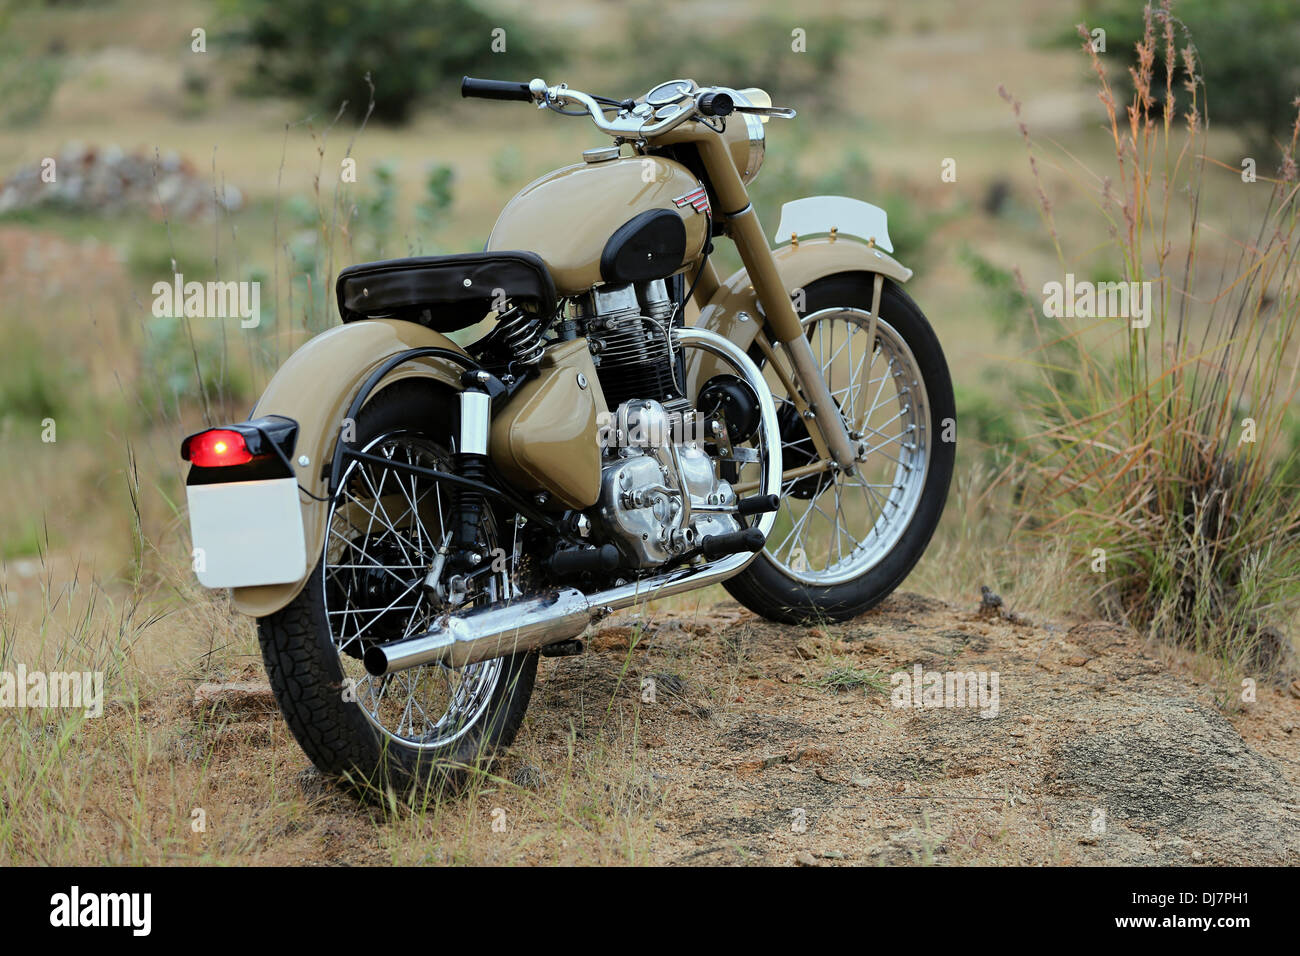 Royal enfield bullet pictures - Royal Enfield Bullet Vintage 1966 G2 Engine India Stock Image